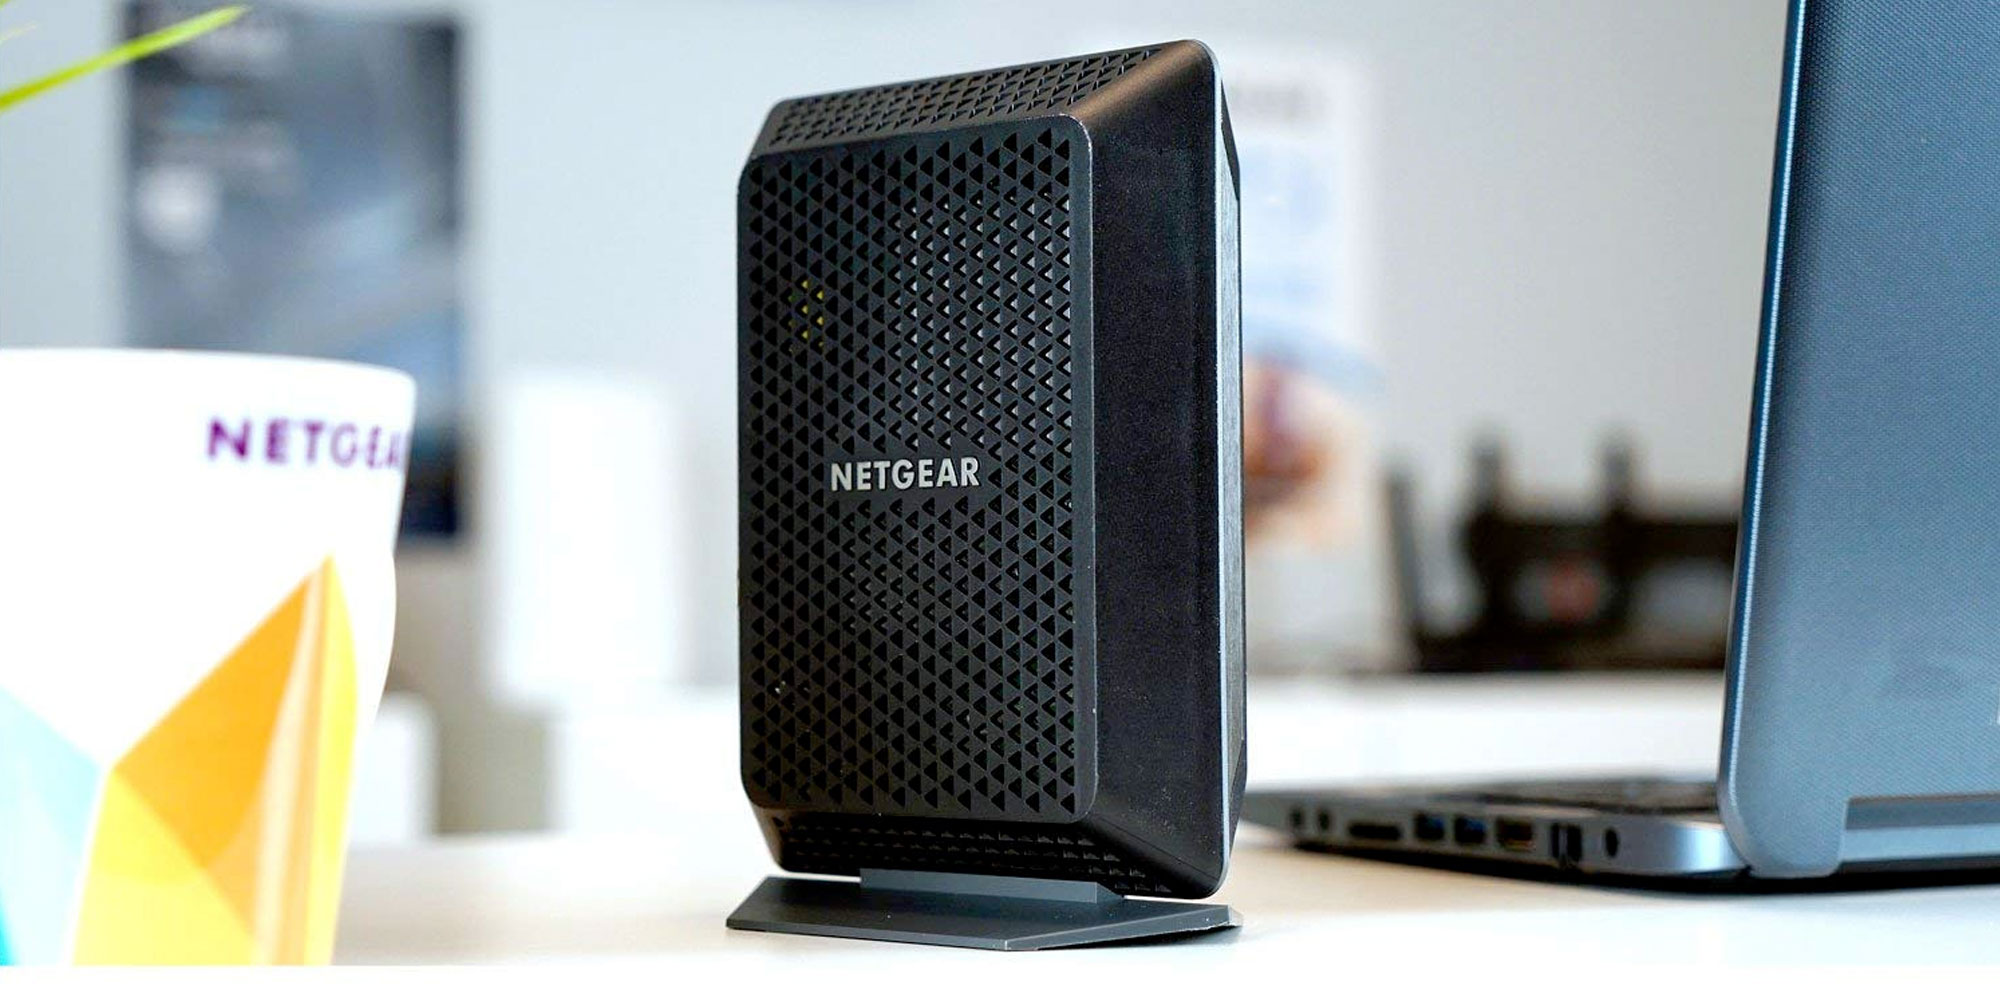 Kick cable rental fees to the curb w/ this NETGEAR DOCSIS 3.0 Modem: $80 (20% off)